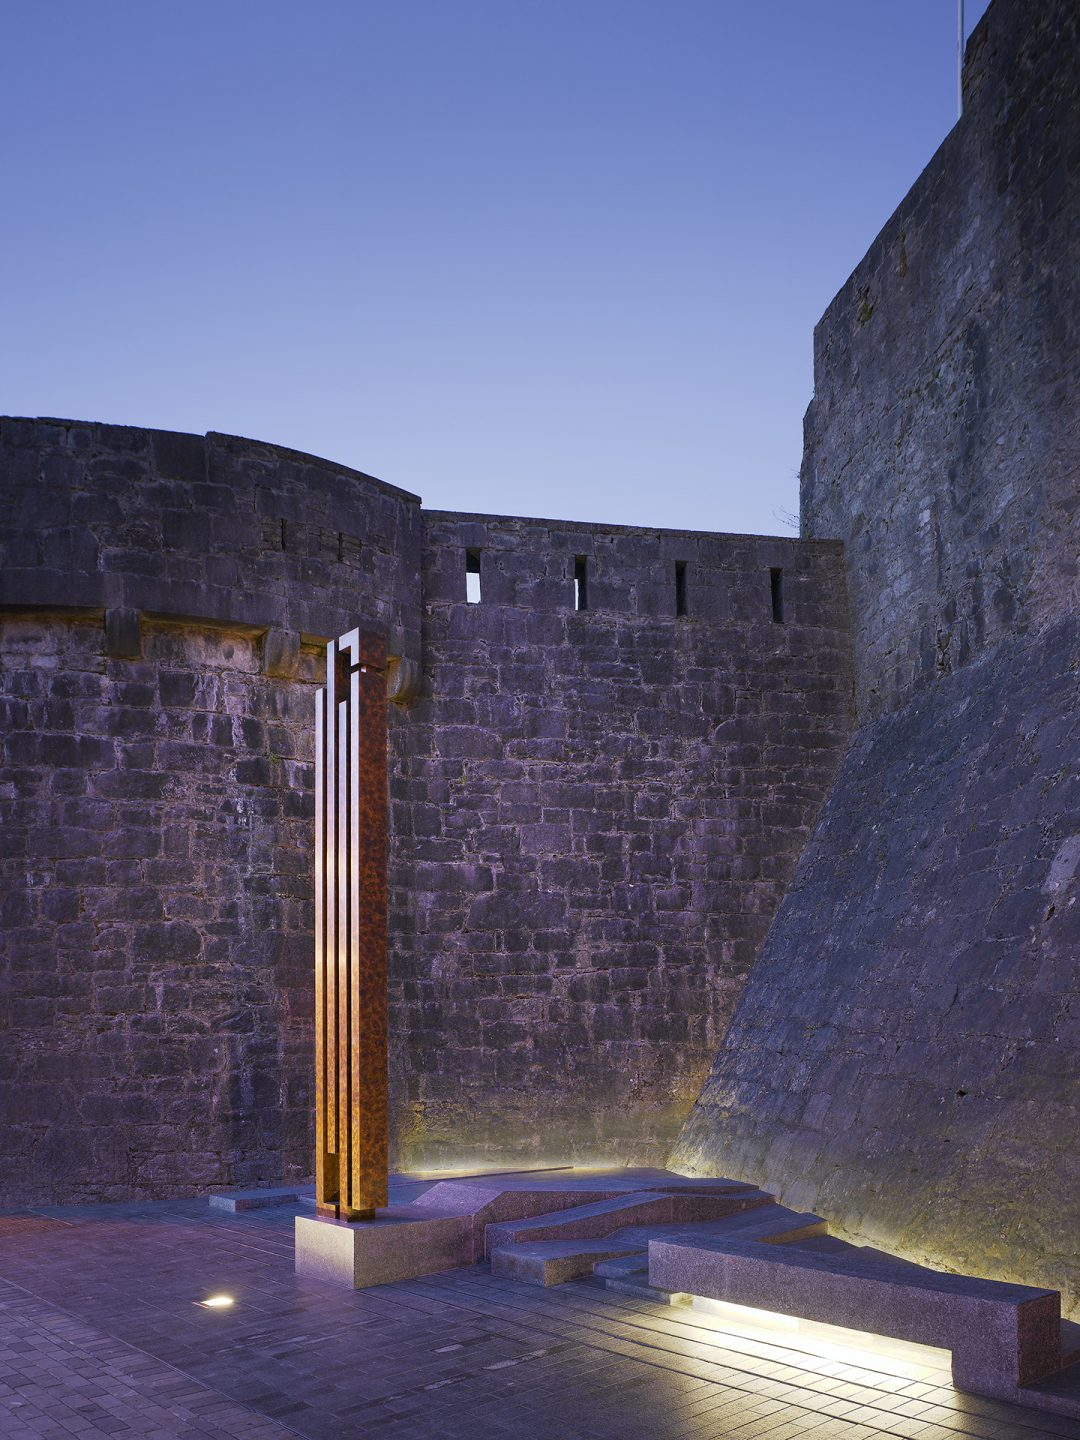 Bronze cenotaph and base at Athlone Army Memorial, Athlone Castle Ireland at dusk